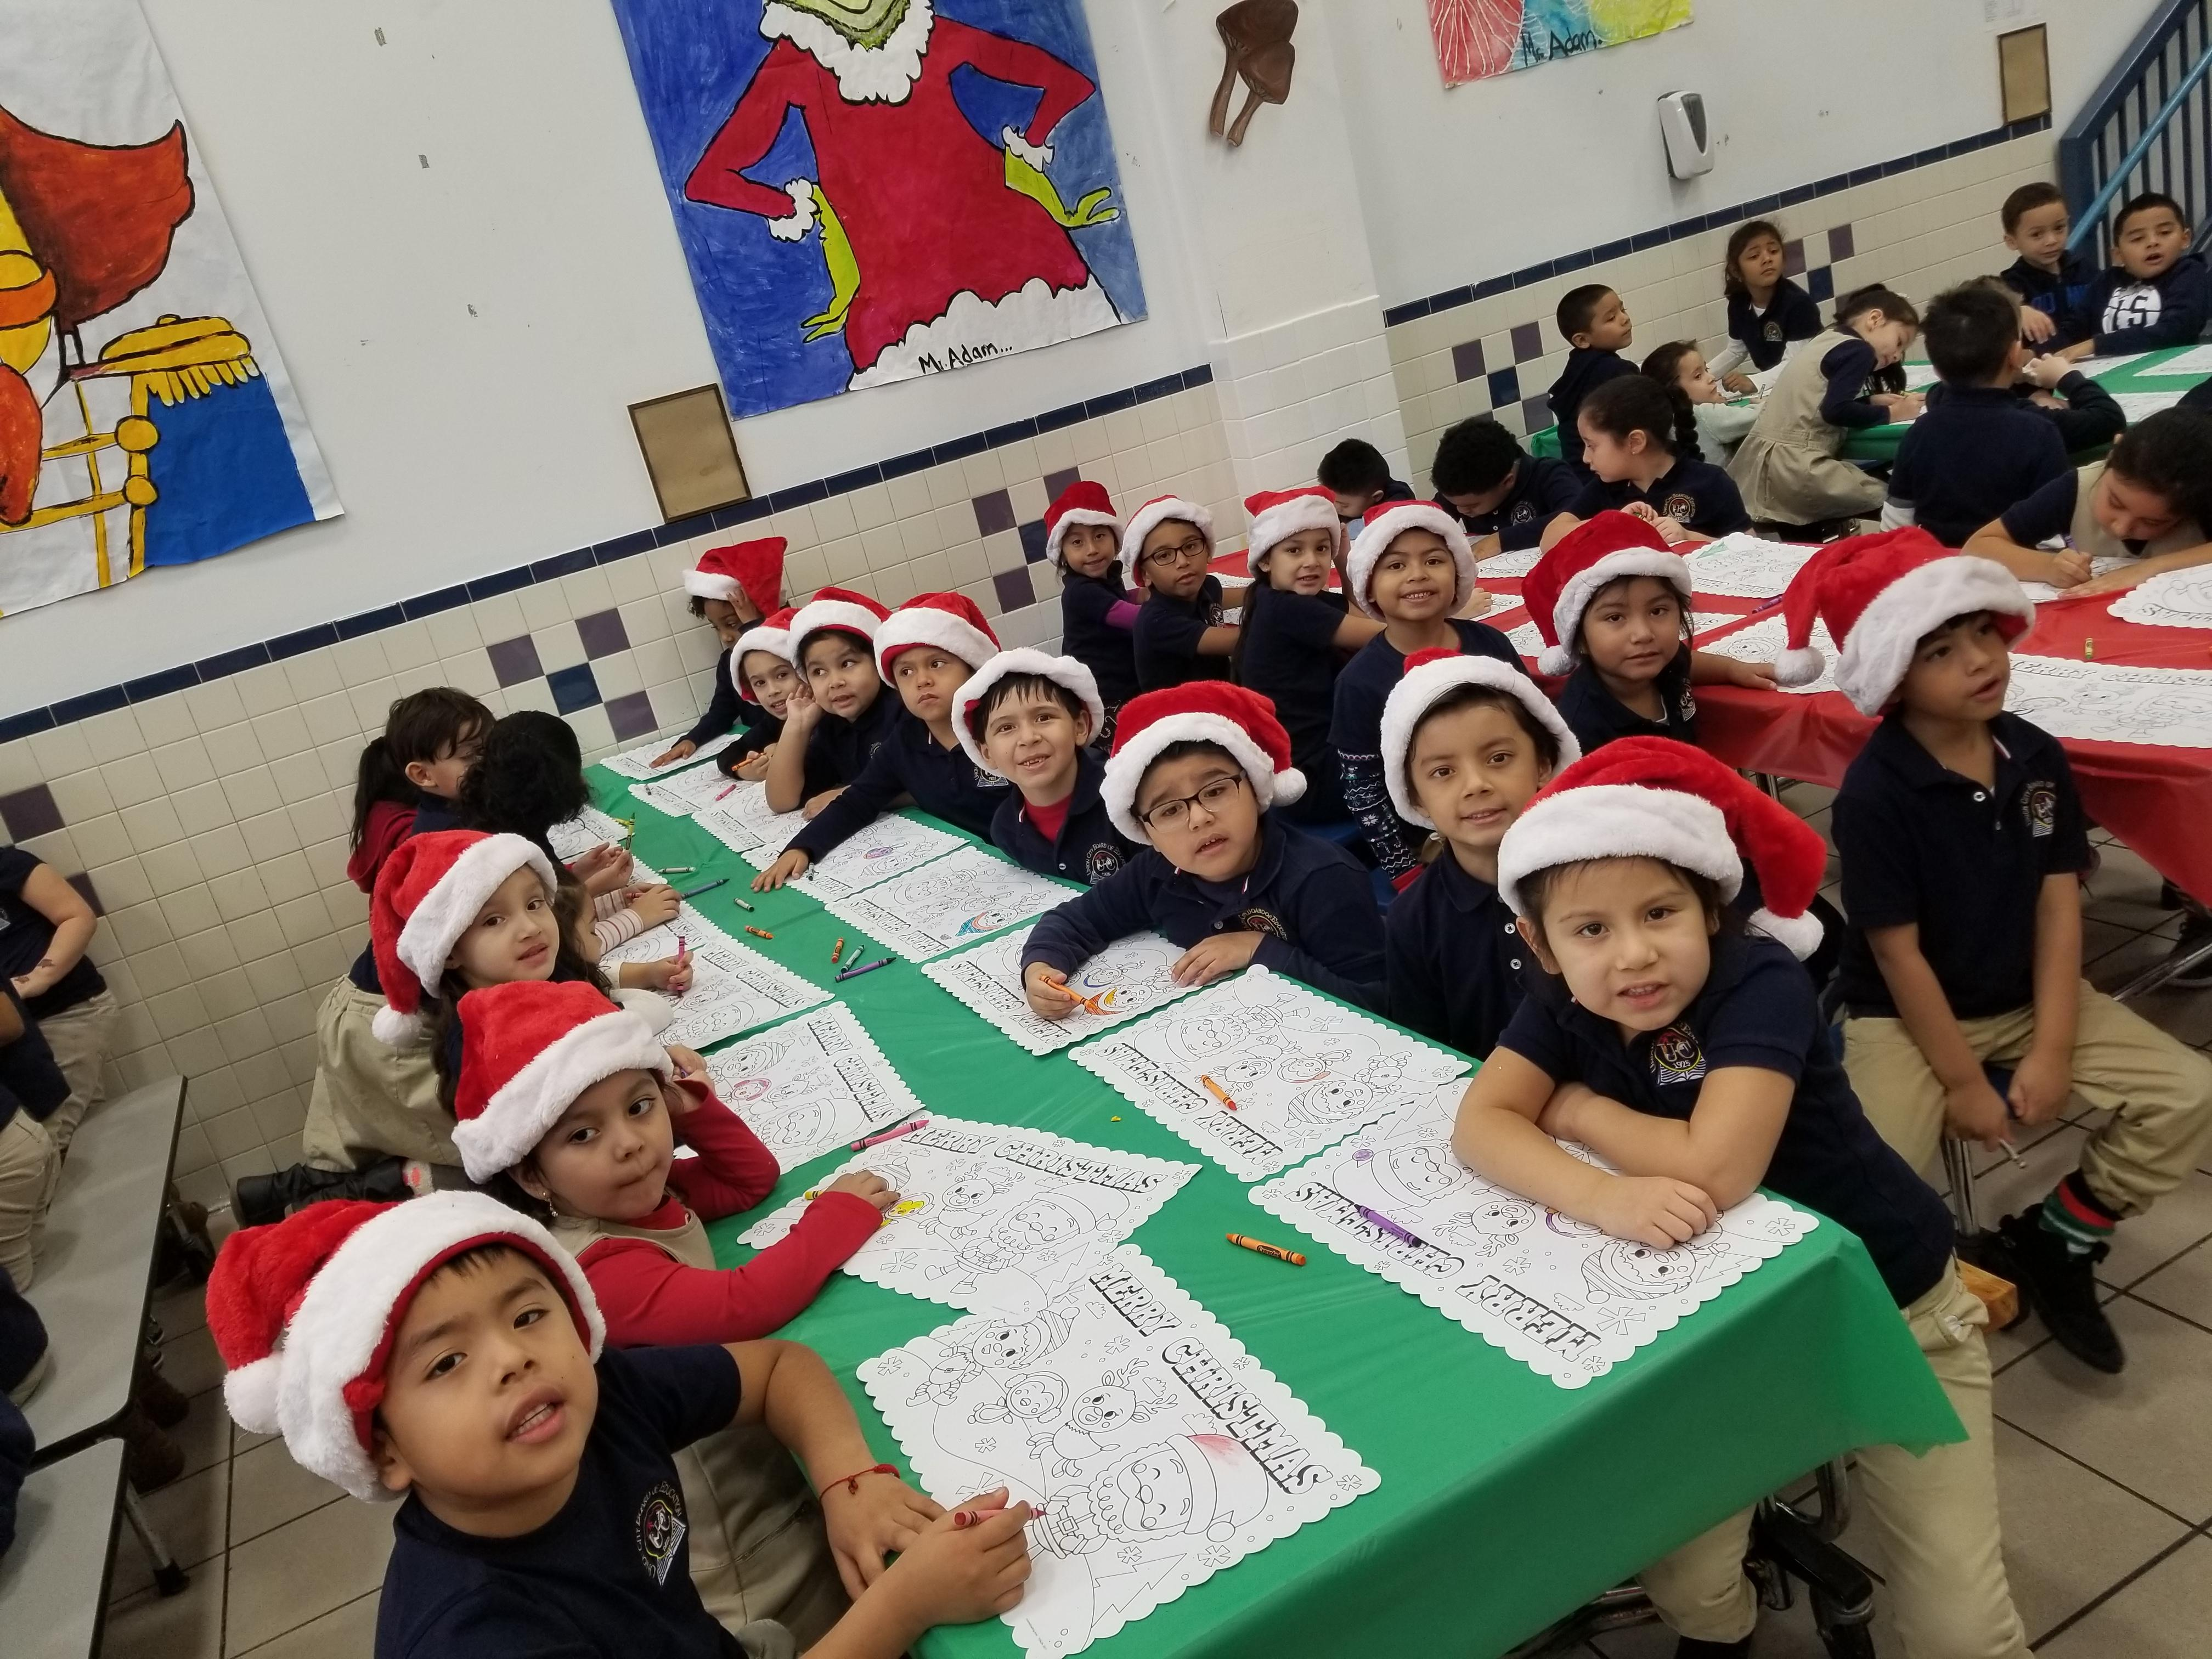 children with santa hats sitting at the tables coloring